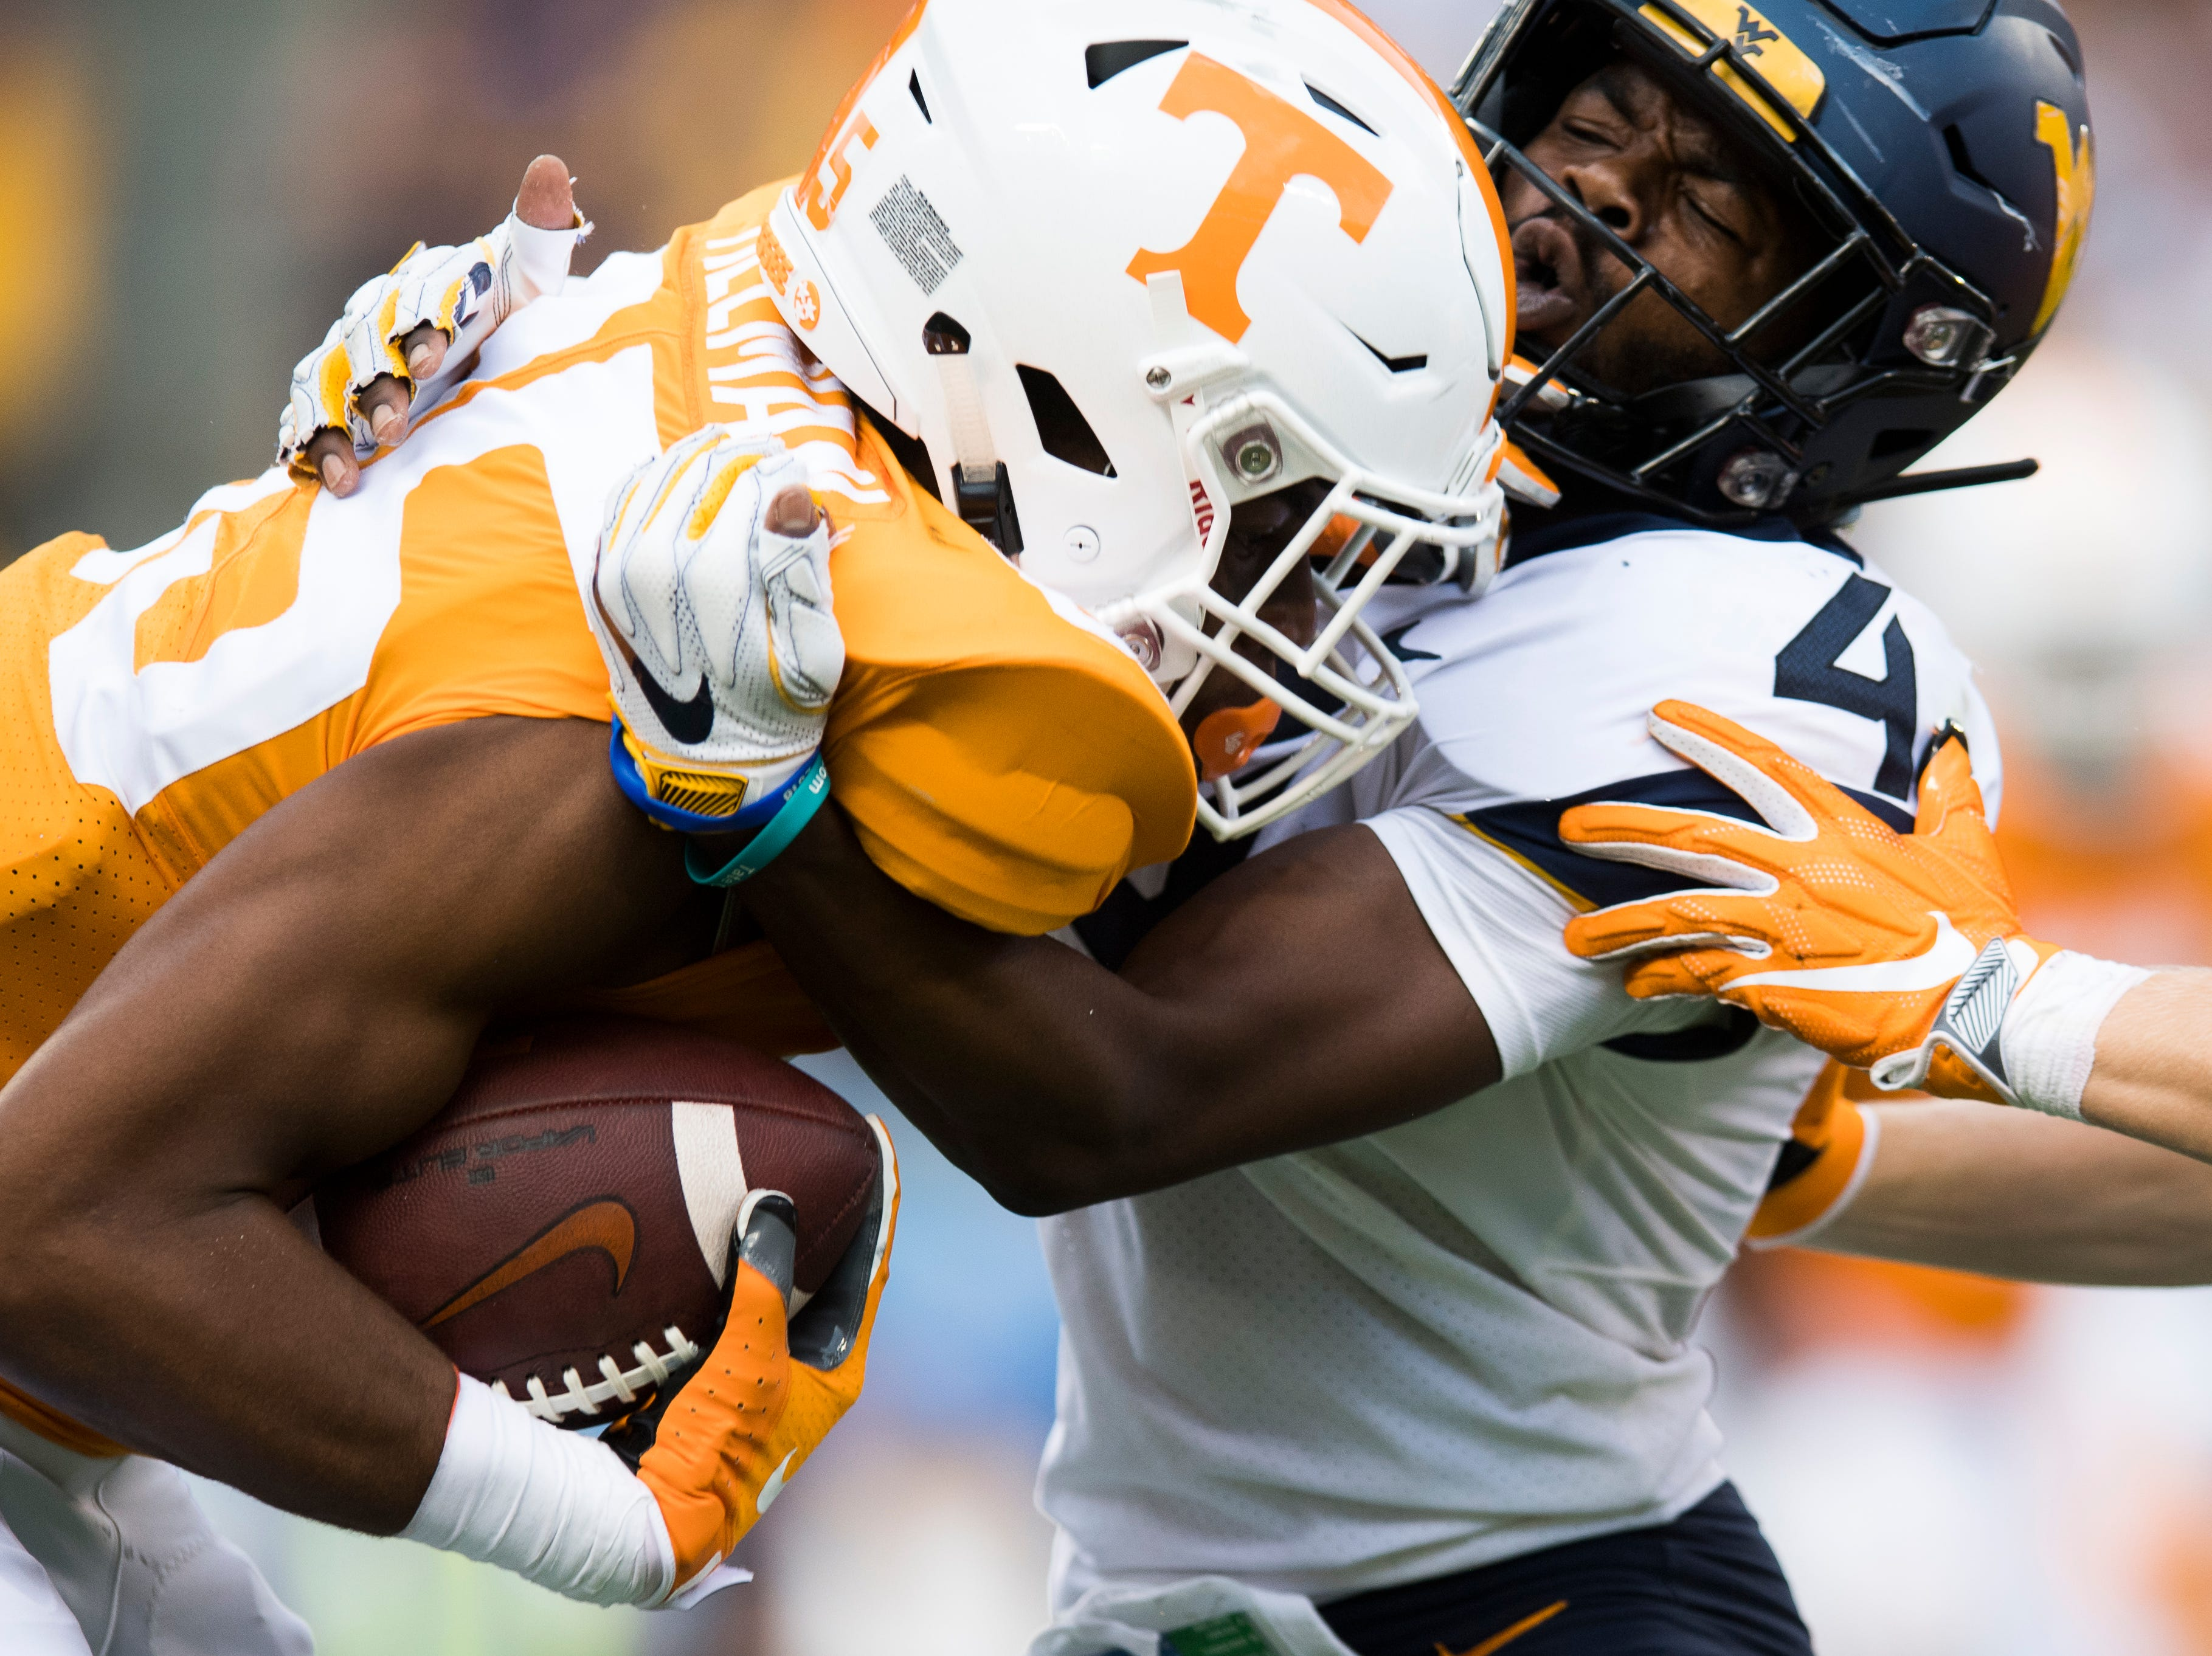 West Virginia safety Josh Norwood (4) defends against Tennessee wide receiver Cedric Tillman (85) during the Belk College Kickoff between Tennessee and West Virginia at Bank of America Stadium in Charlotte, North Carolina on Saturday, September 1, 2018.